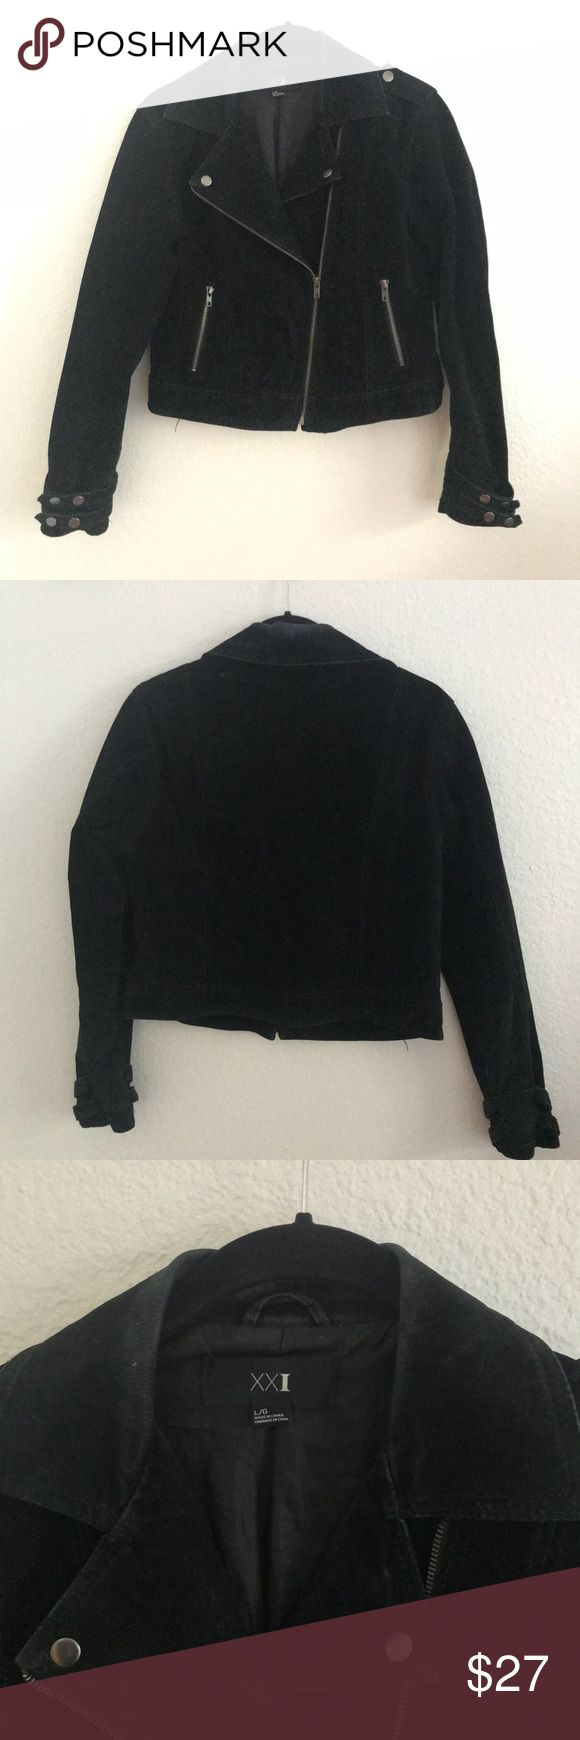 Suede Moto Jacket Forever 21 genuine suede moto jacket. 100% leather throughout. Full length sleeves with snap embellishment at cuffs. Front zip closure and pockets. Worn a number of times and has light wear on the collar. Otherwise excellent condition. Forever 21 Jackets & Coats